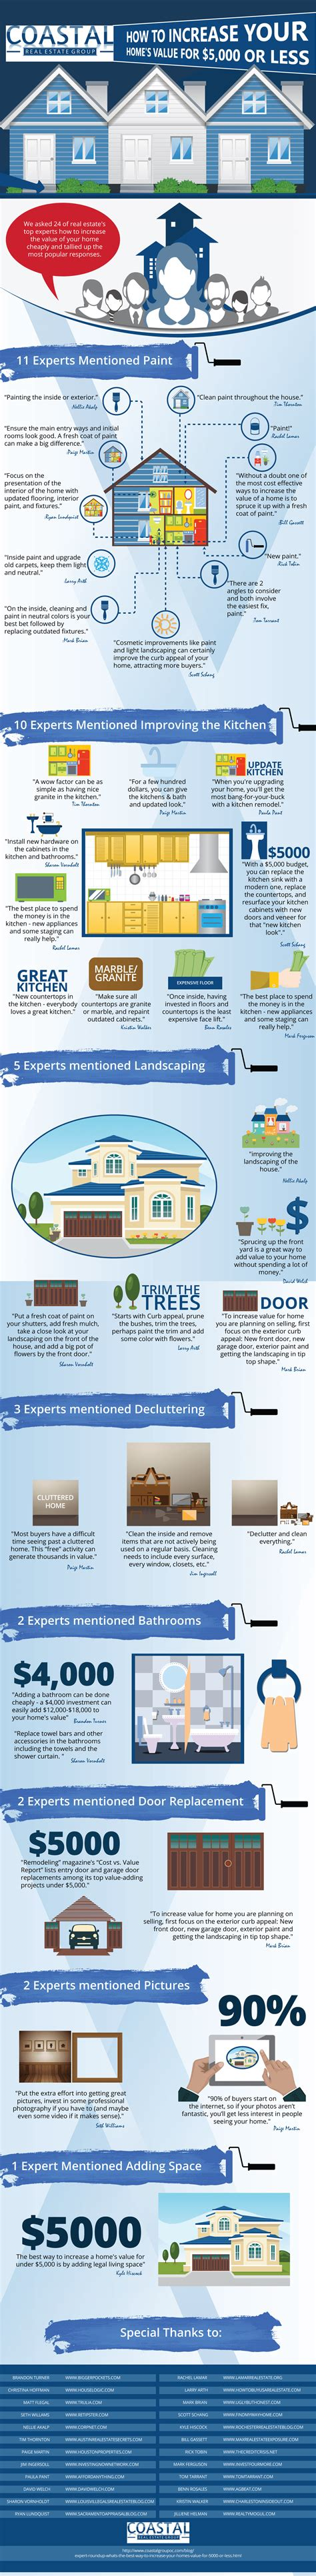 increase home value infographic 24 real estate experts share secrets on